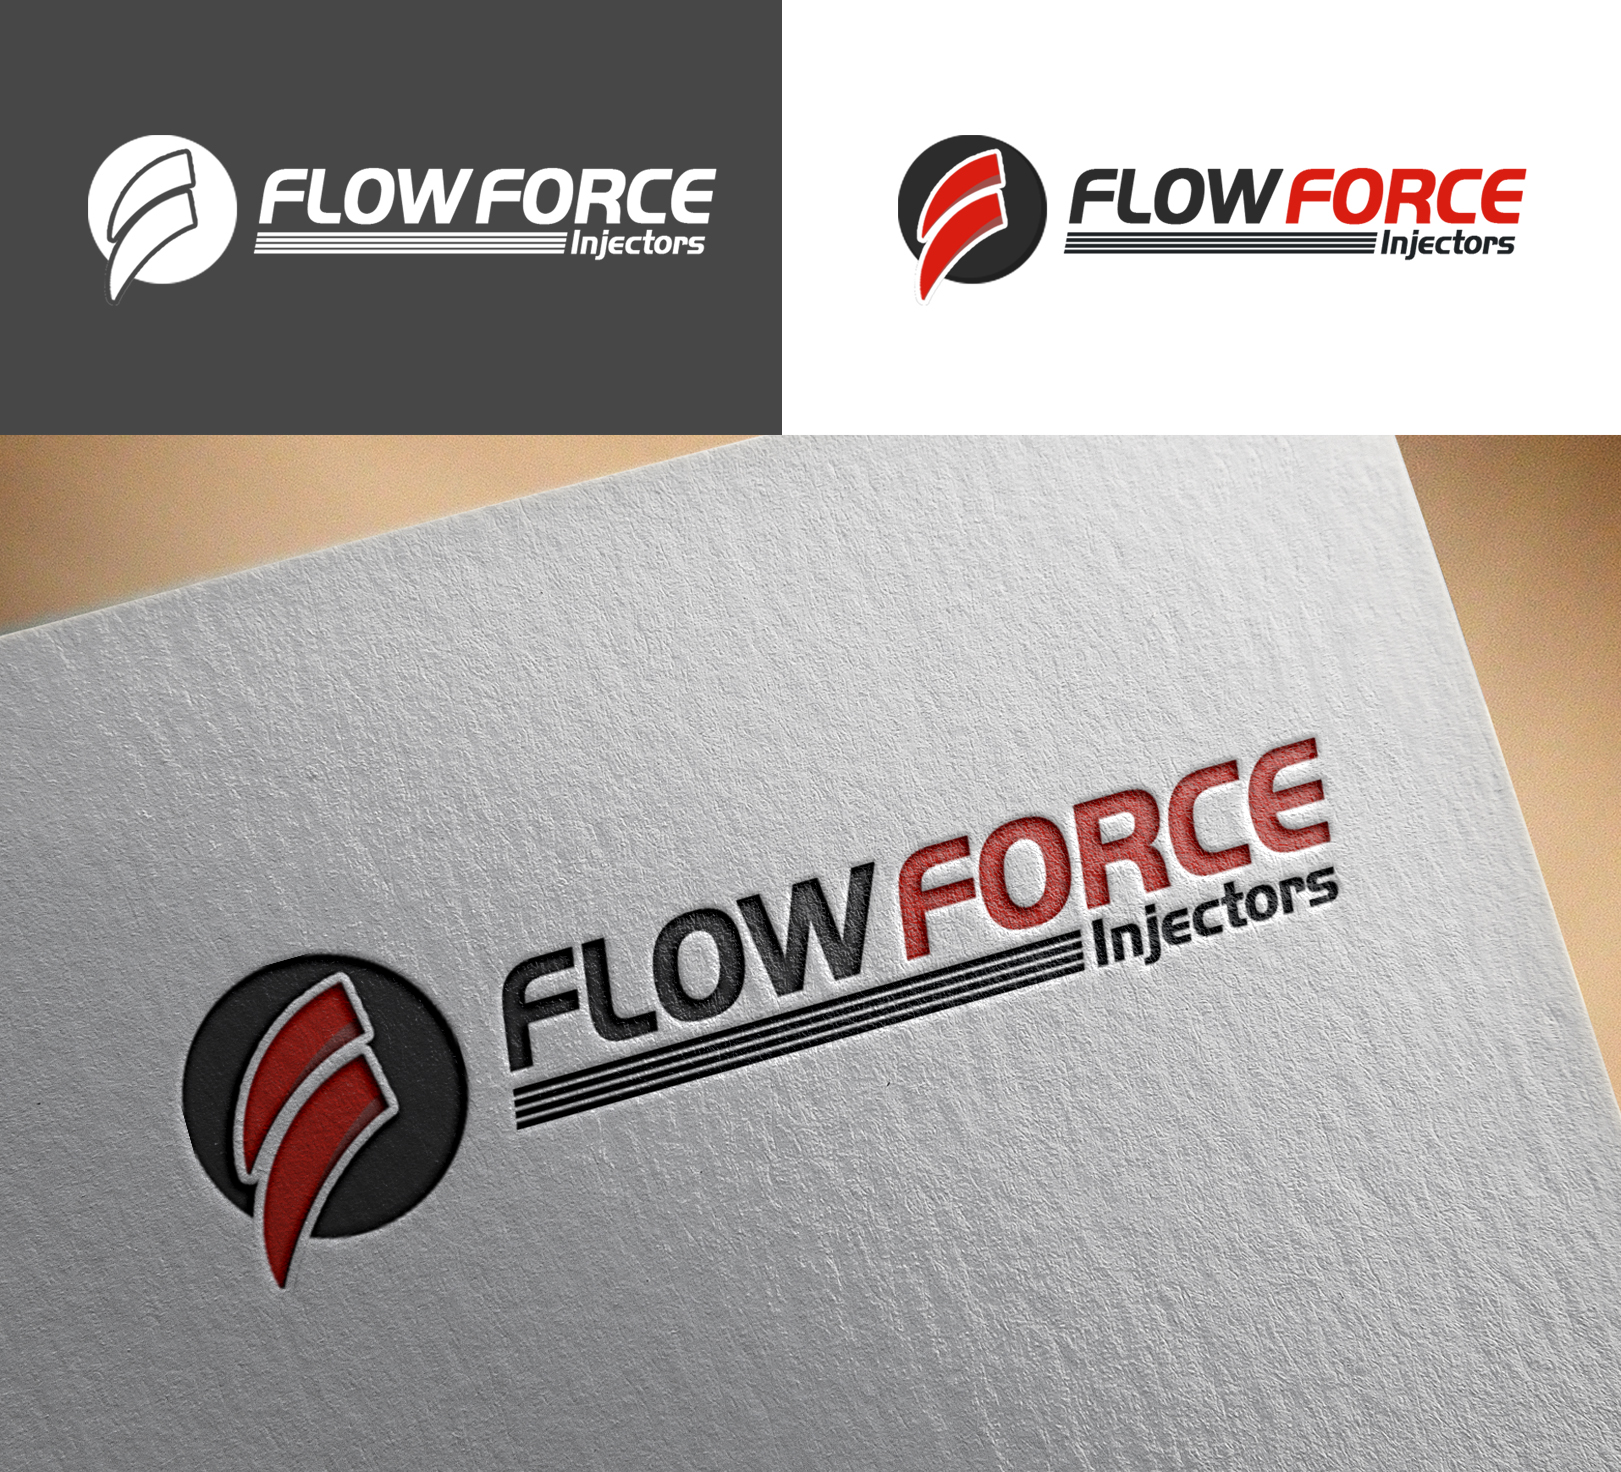 Logo Design by Sohaib Ali Khan - Entry No. 171 in the Logo Design Contest Fun Logo Design for Flow Force Injectors.